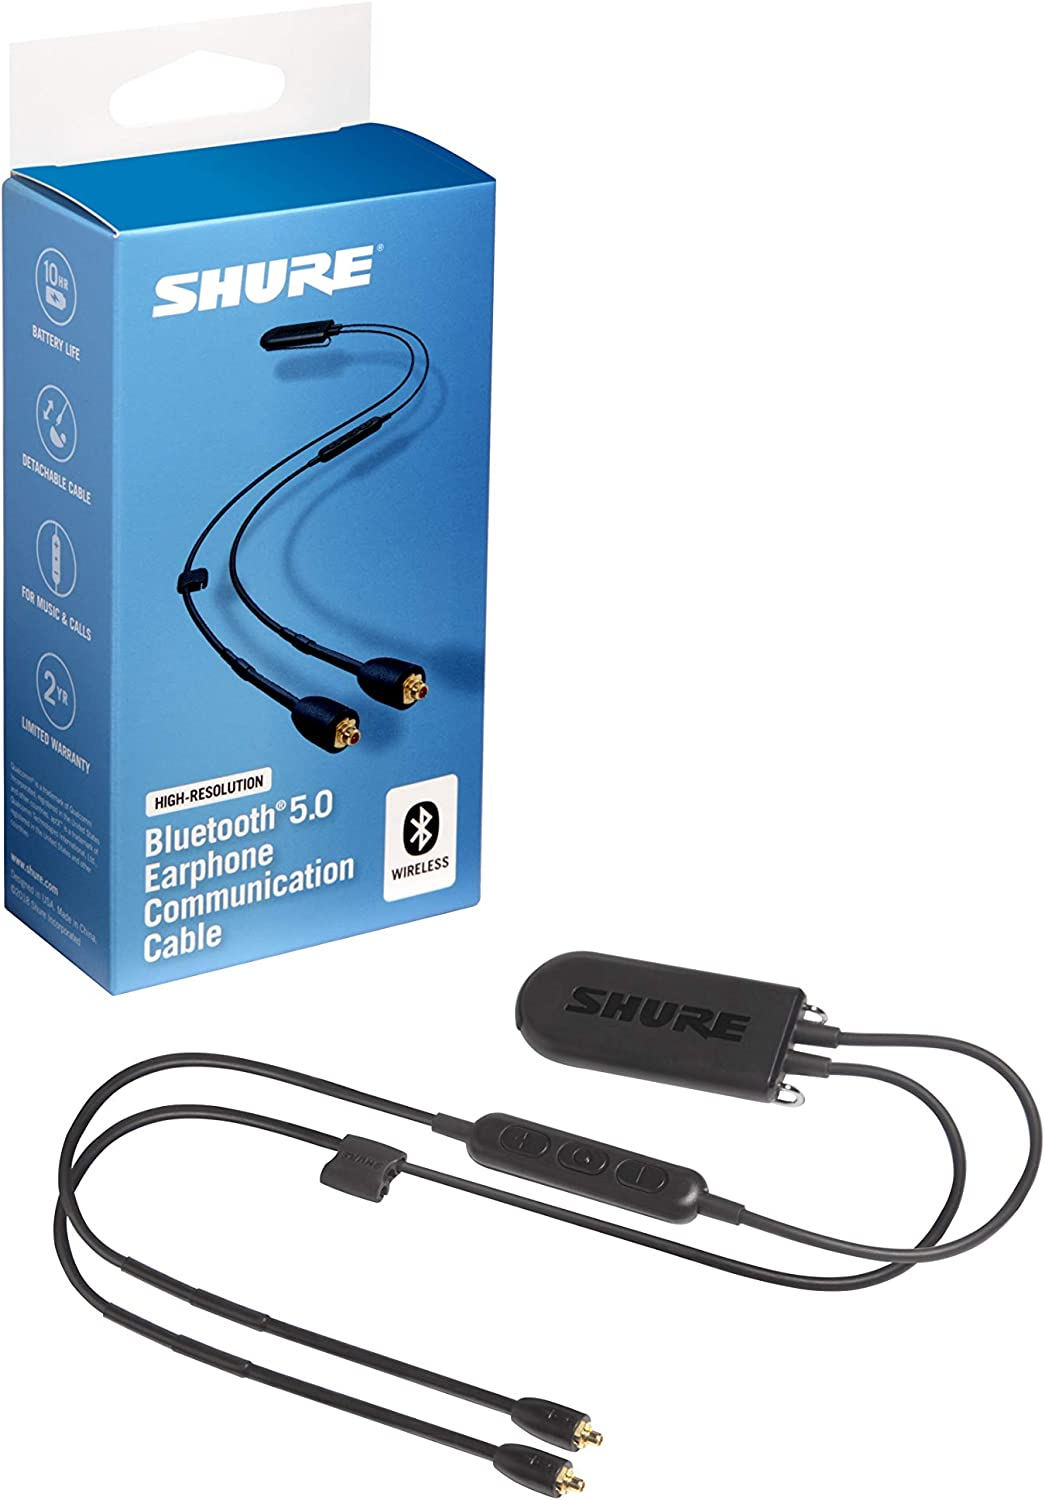 Shure Mccx cables replacement cable 4.4mm